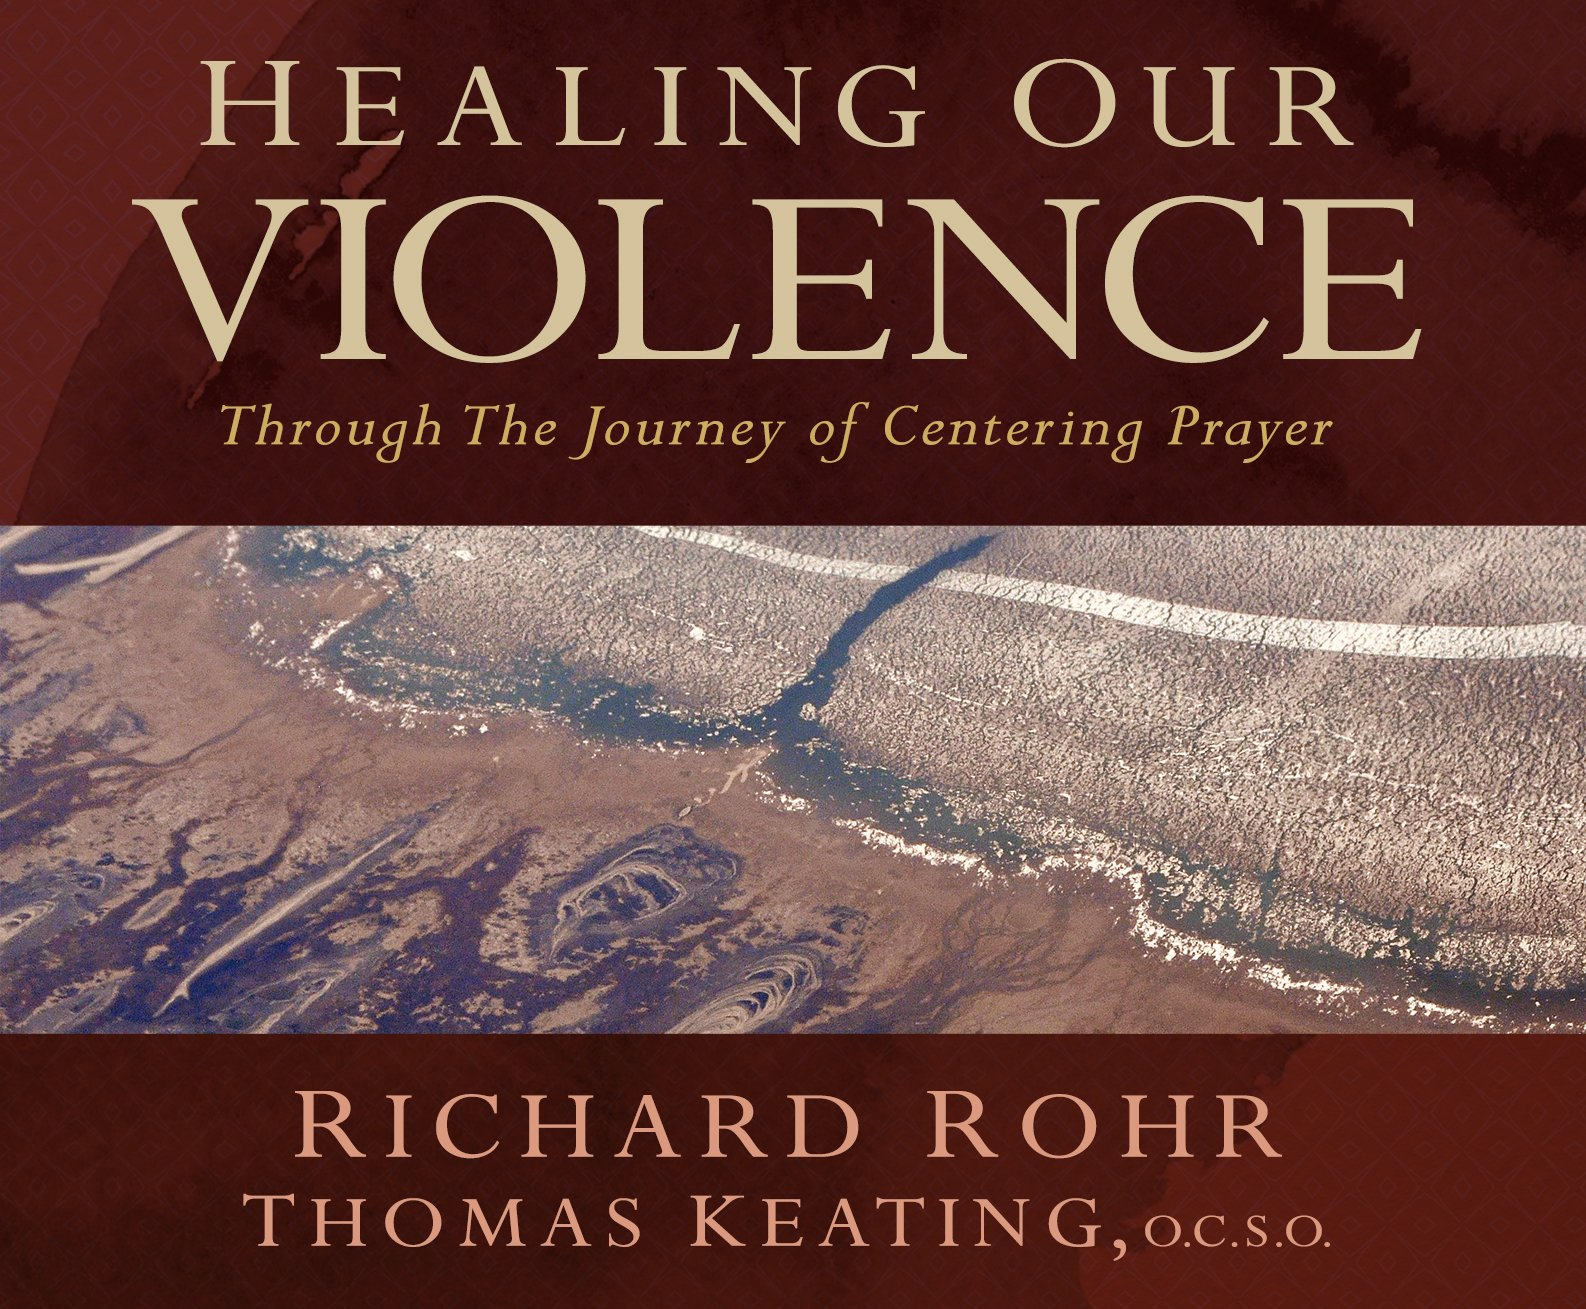 Healing Our Violence Through The Journey Of Centering Prayer: Richard Rohr  Ofm, Thomas Keating Ocso: 9781616361075: Amazon: Books